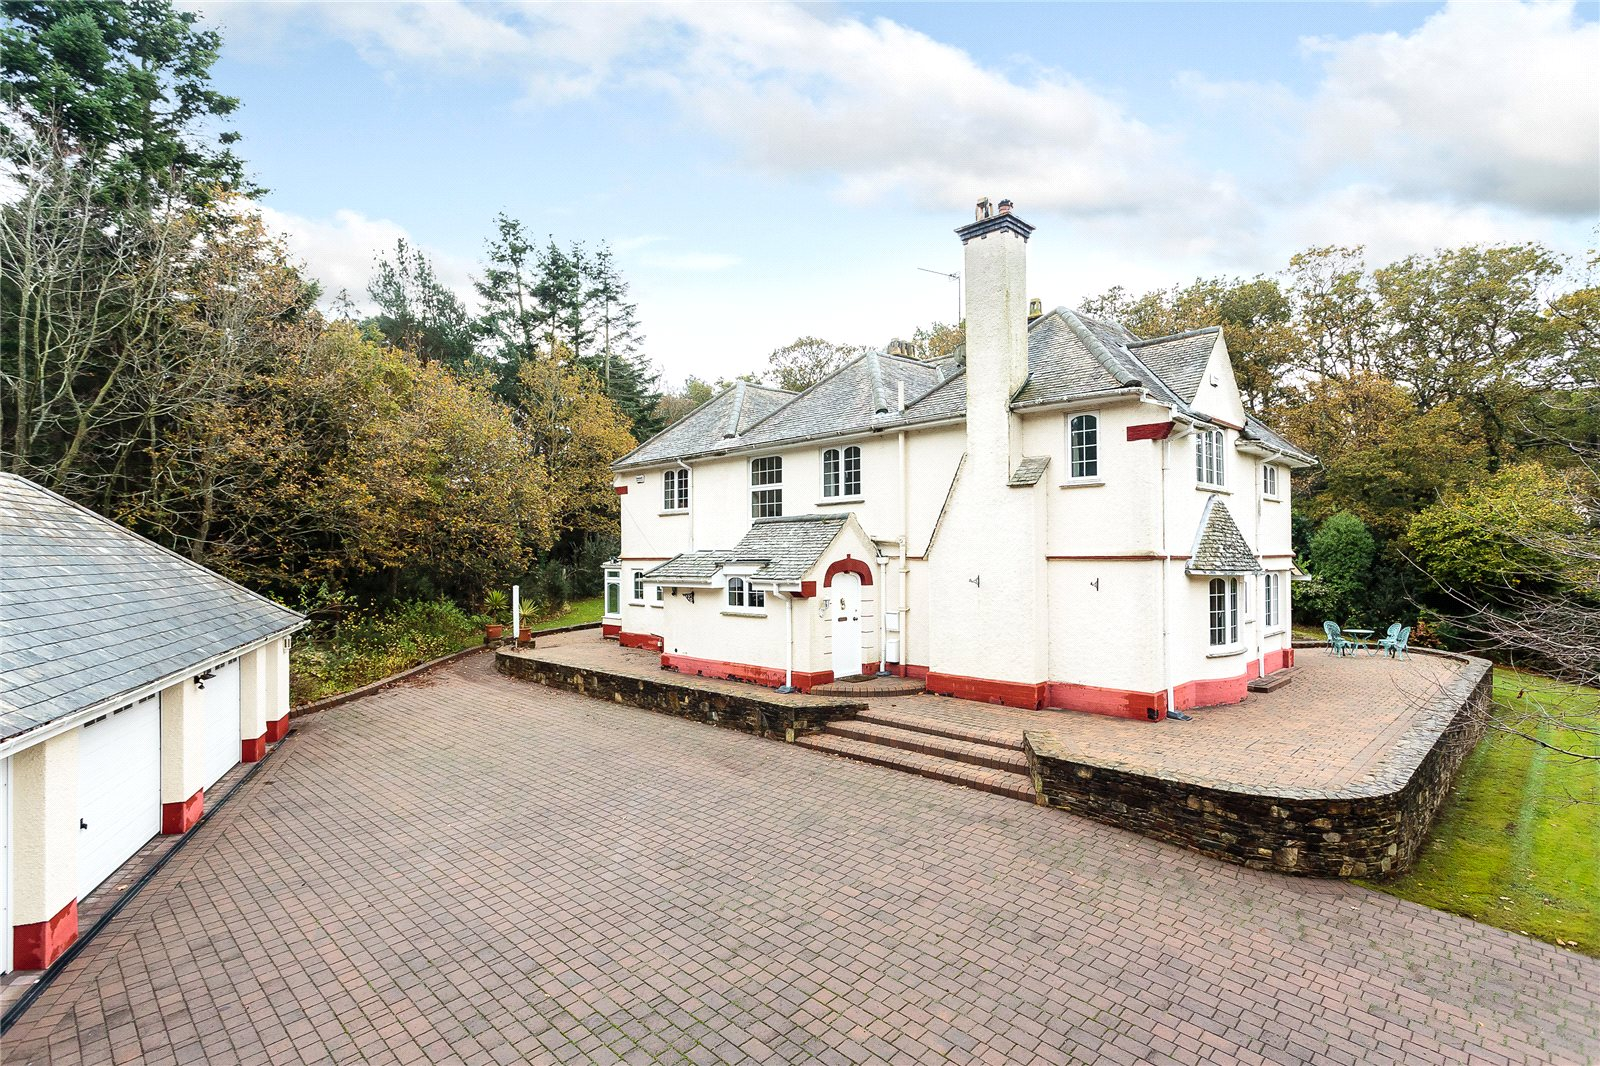 Additional photo for property listing at Exmouth Road, Budleigh Salterton, Devon, EX9 Budleigh Salterton, Αγγλια